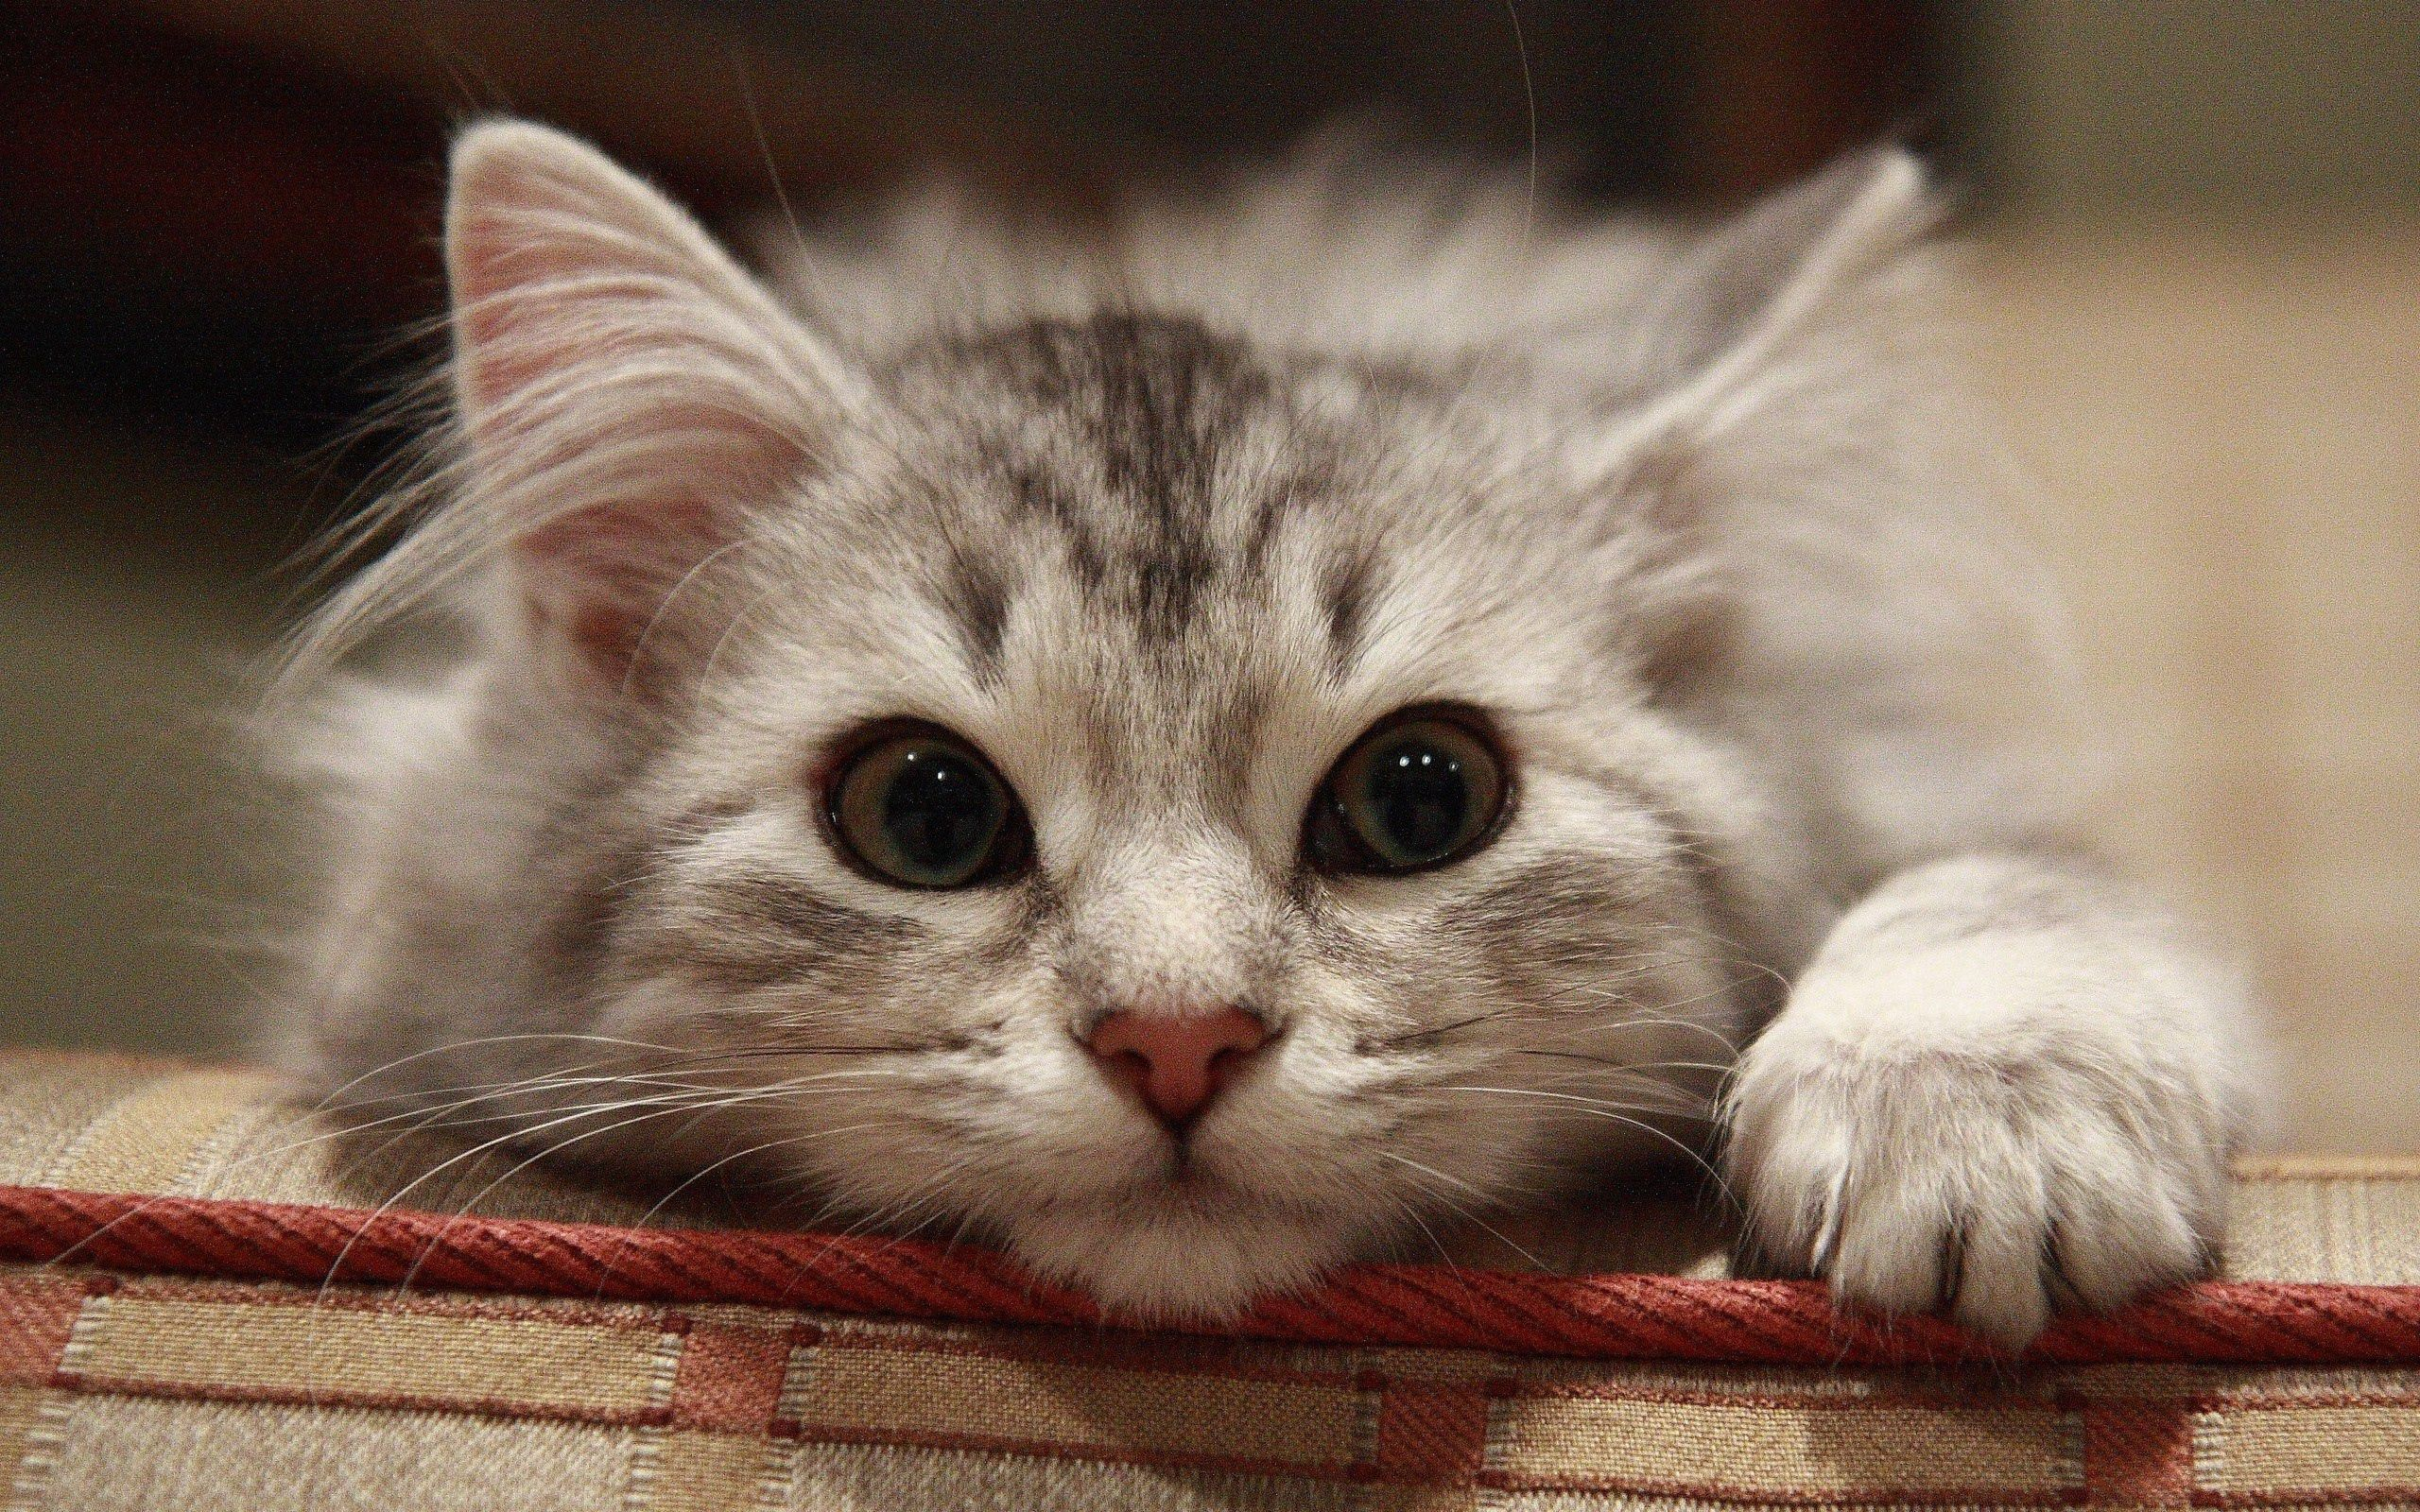 Download mobile wallpaper Animals, Muzzle, Beautiful Cat, Cat, Fluffy for free.